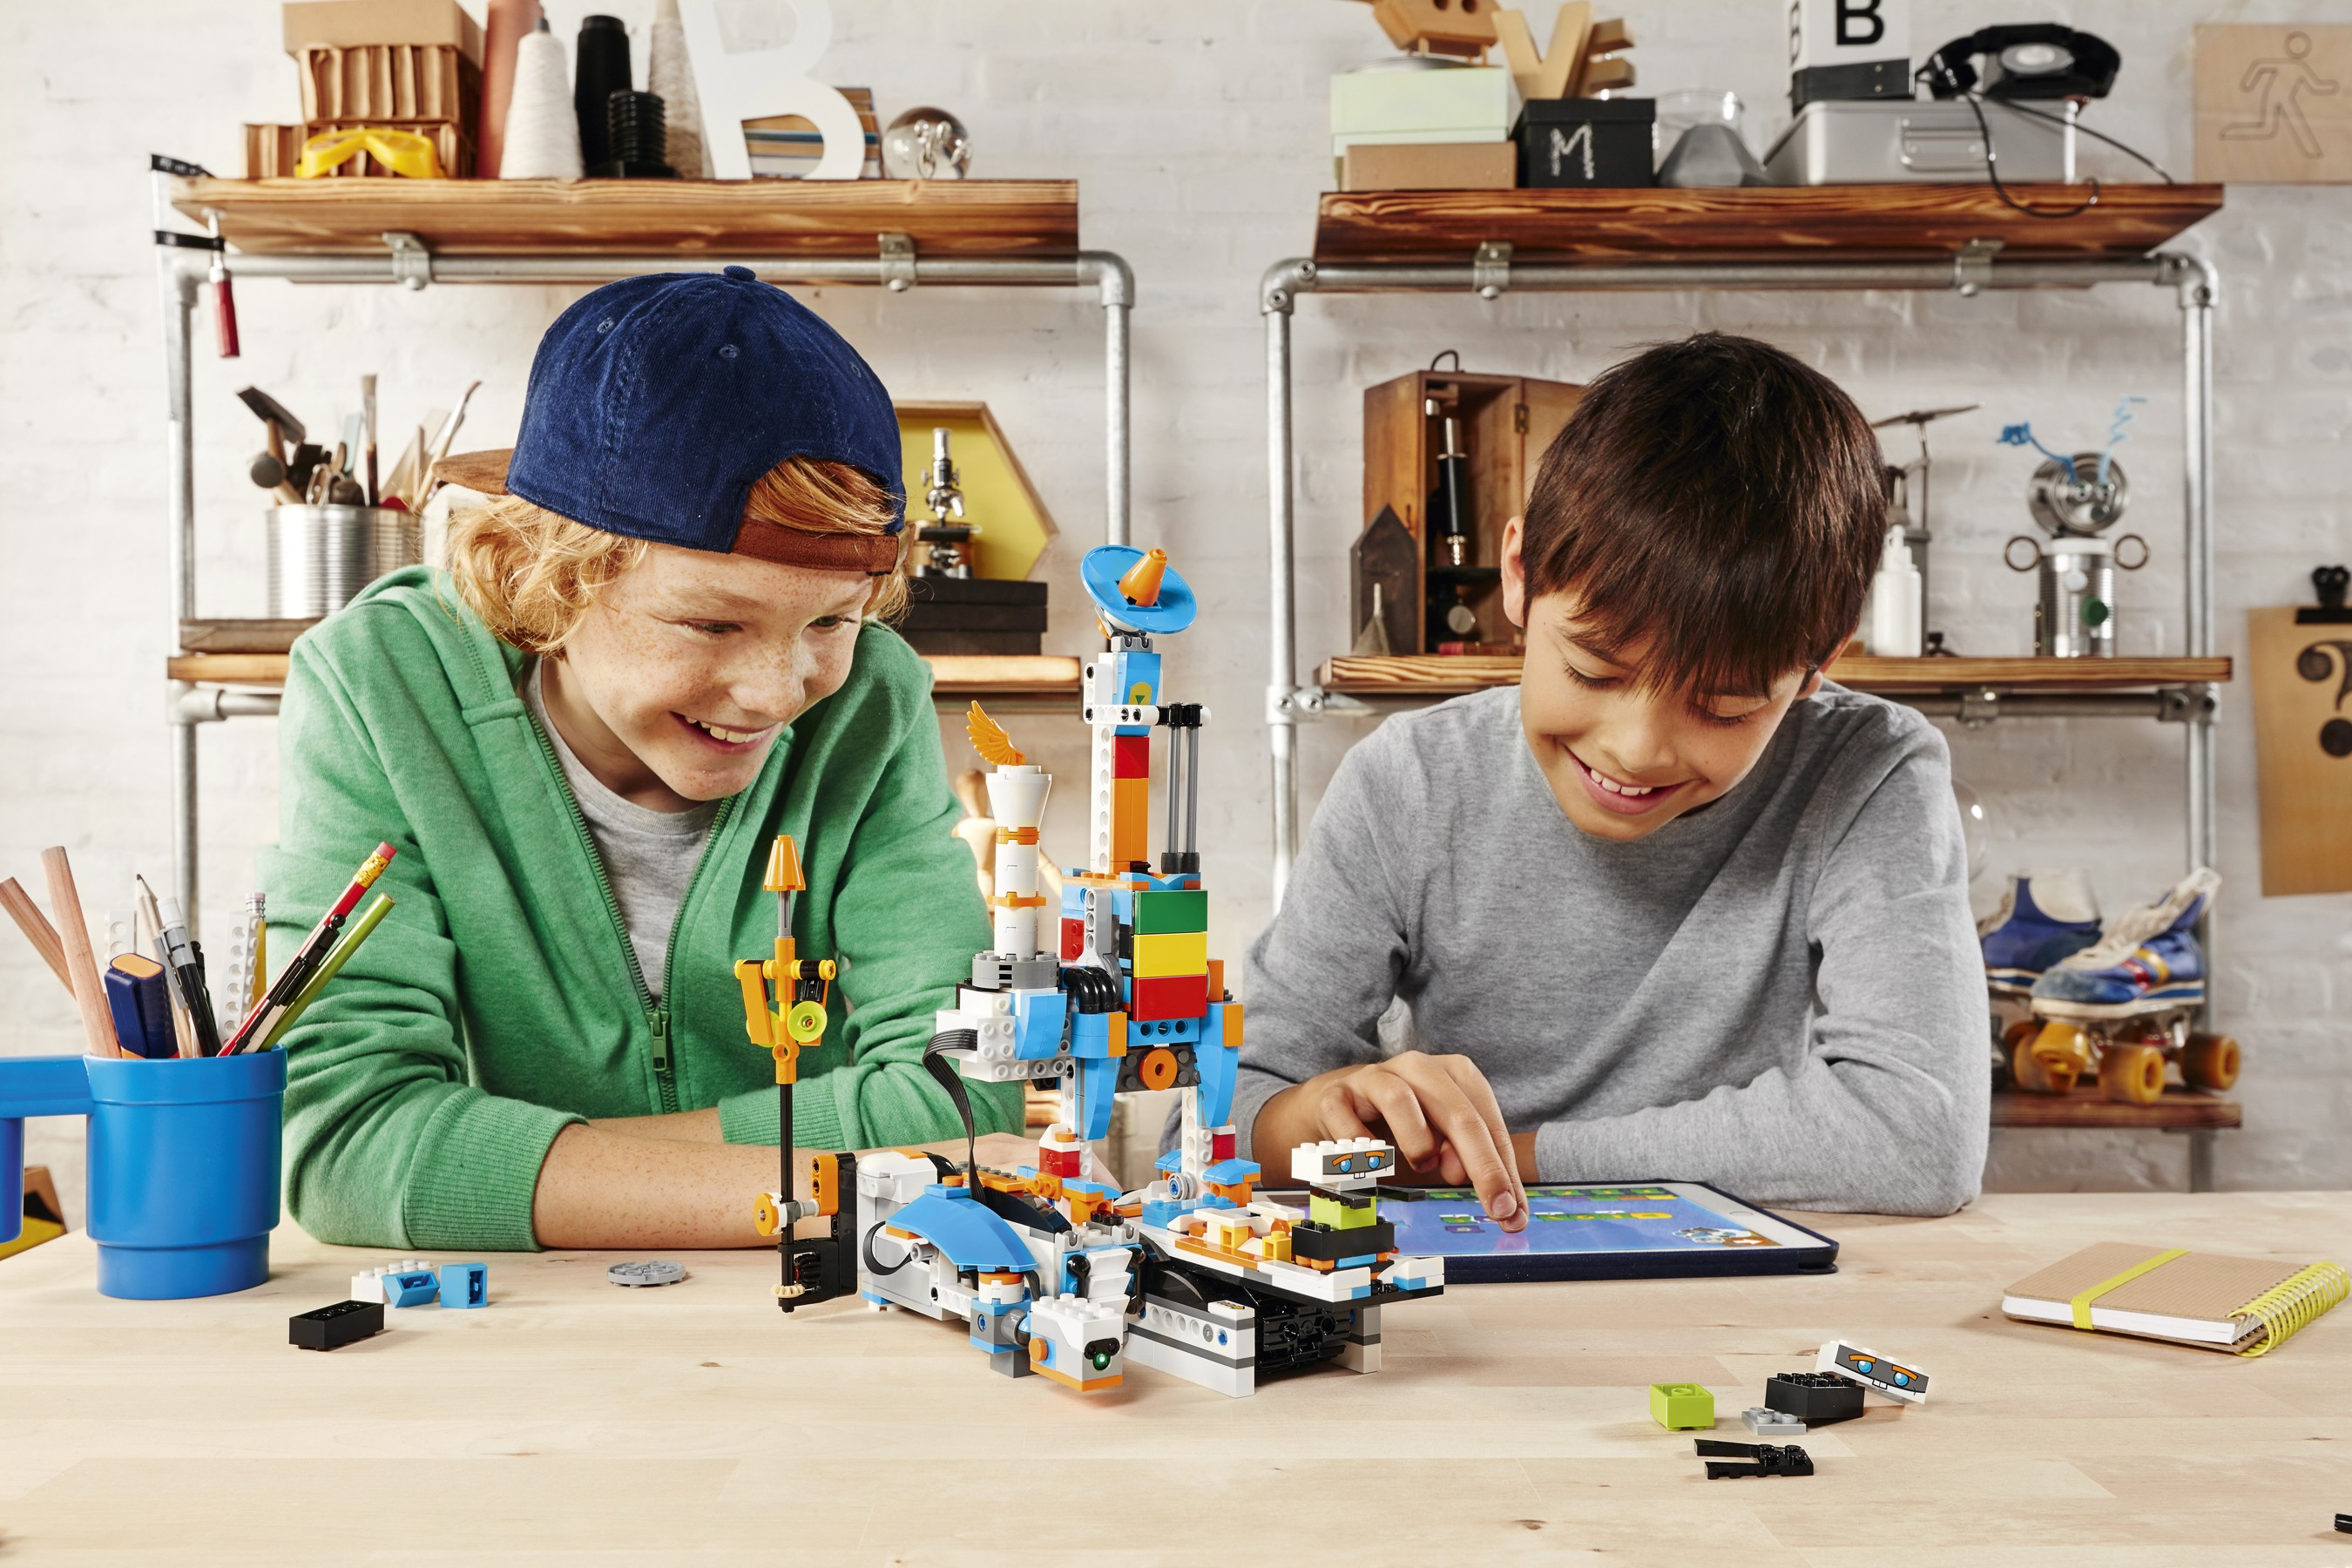 LEGO_BOOST_FOTO1_AUTO_BUILDER_kidsplaying